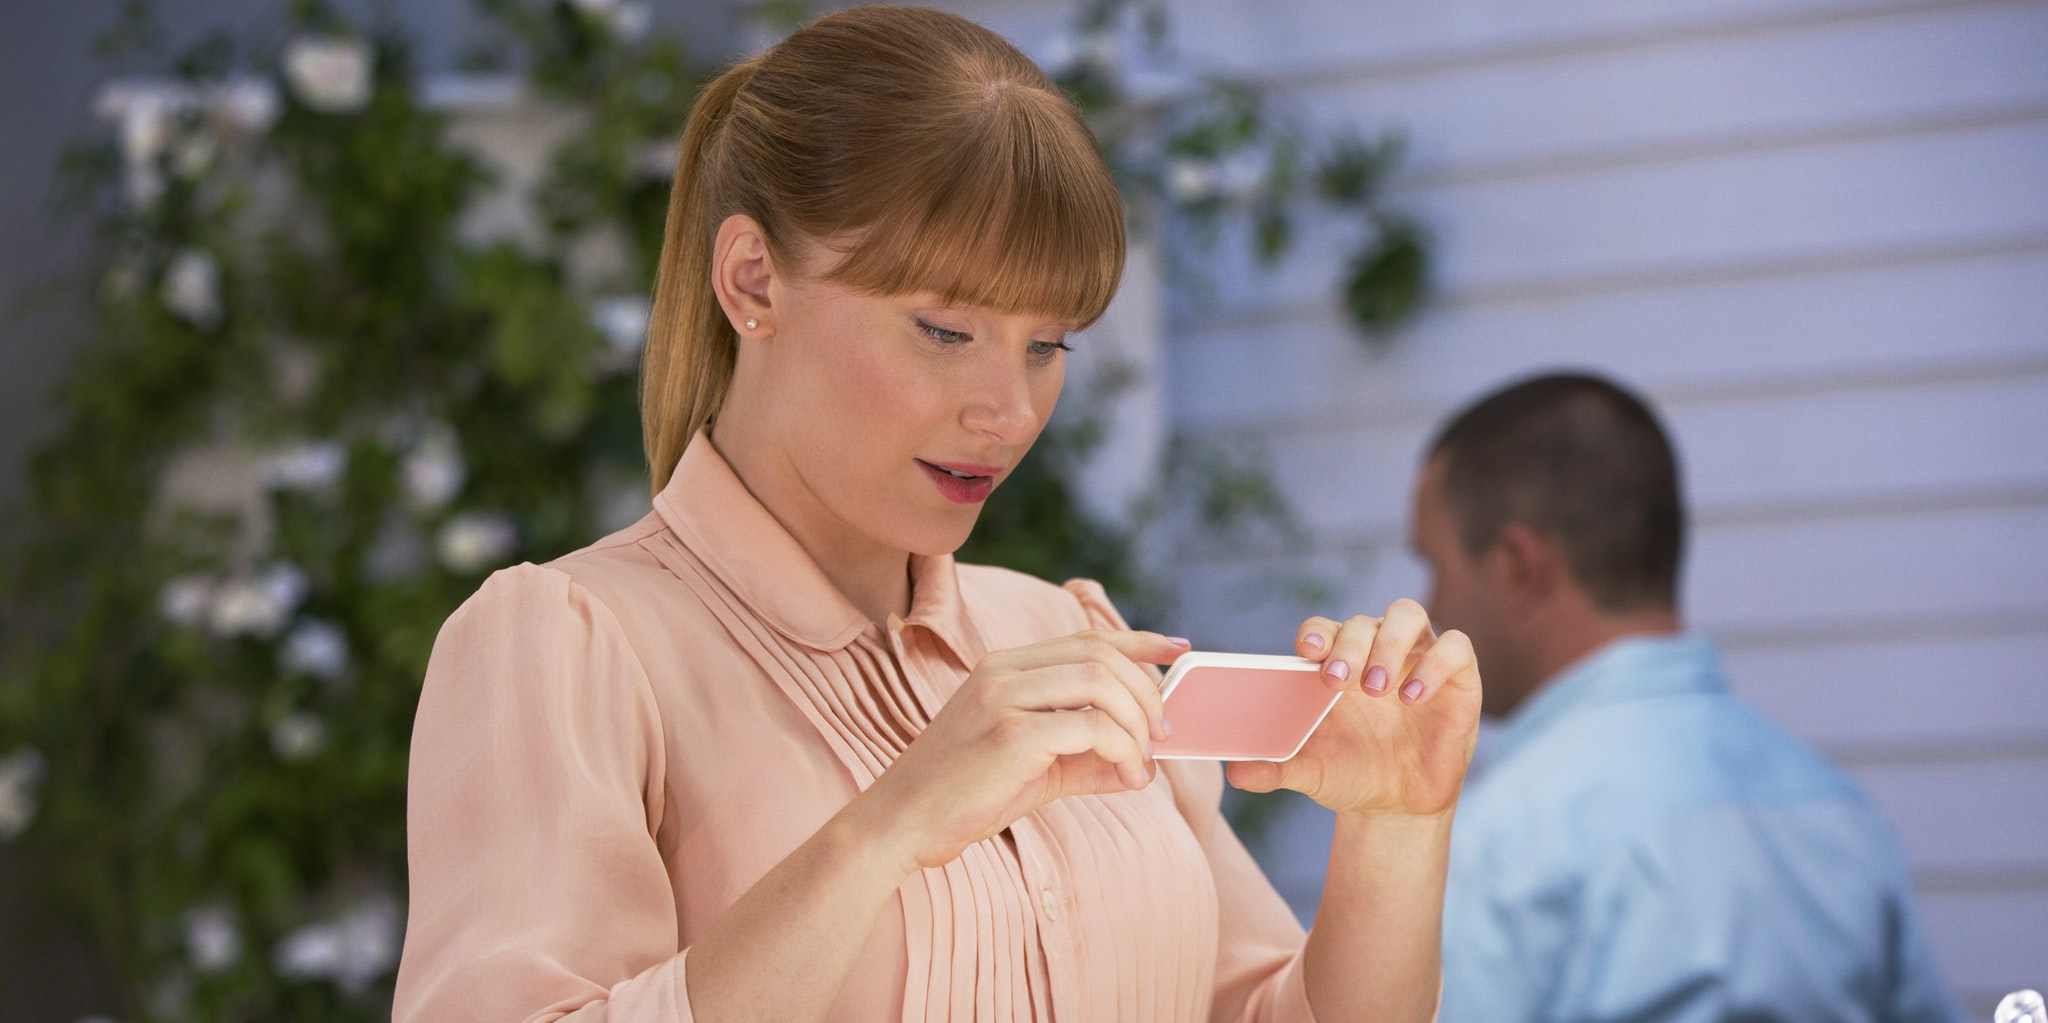 Black Mirror (Season 3): The British anthology series that focuses upon satirizing modern society, often with a slam at modern technology, is going from the UK's Channel 4 to Netflix, as each episode will continue to have the same incredible guest actors, including Bryce Dallas Howard (Jurassic World) and Kelly Macdonald (Boardwalk Empire) and directors, including Joe Wright (Atonement) and Dan Trachtenberg (10 Cloverfield Lane), not to mention engrossing stories that will continue the series' sharp satire and brilliant writing. When this premieres on Netflix on October 21st, get ready to see some of the best that television has to offer.